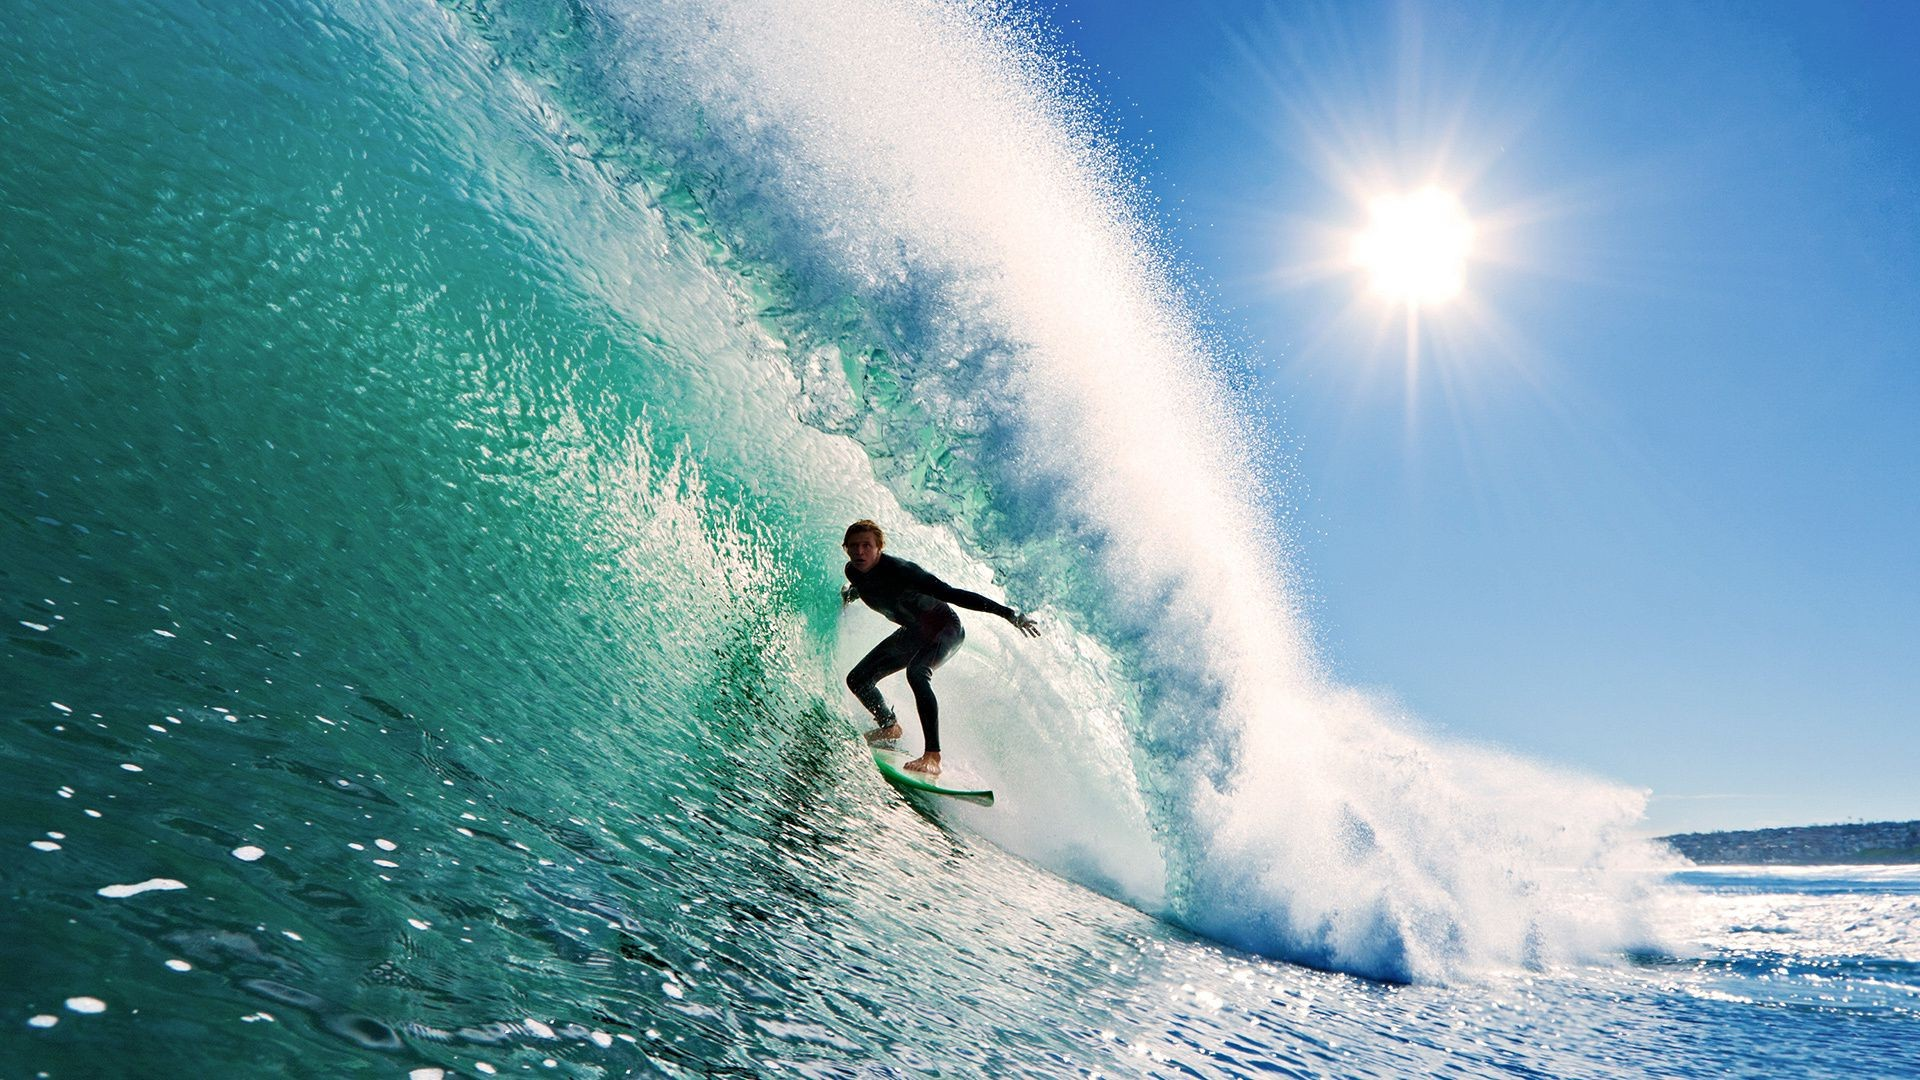 Sports Wallpapers For Android: Surfing The Wave Of The Sun, The Sky. Android Wallpapers